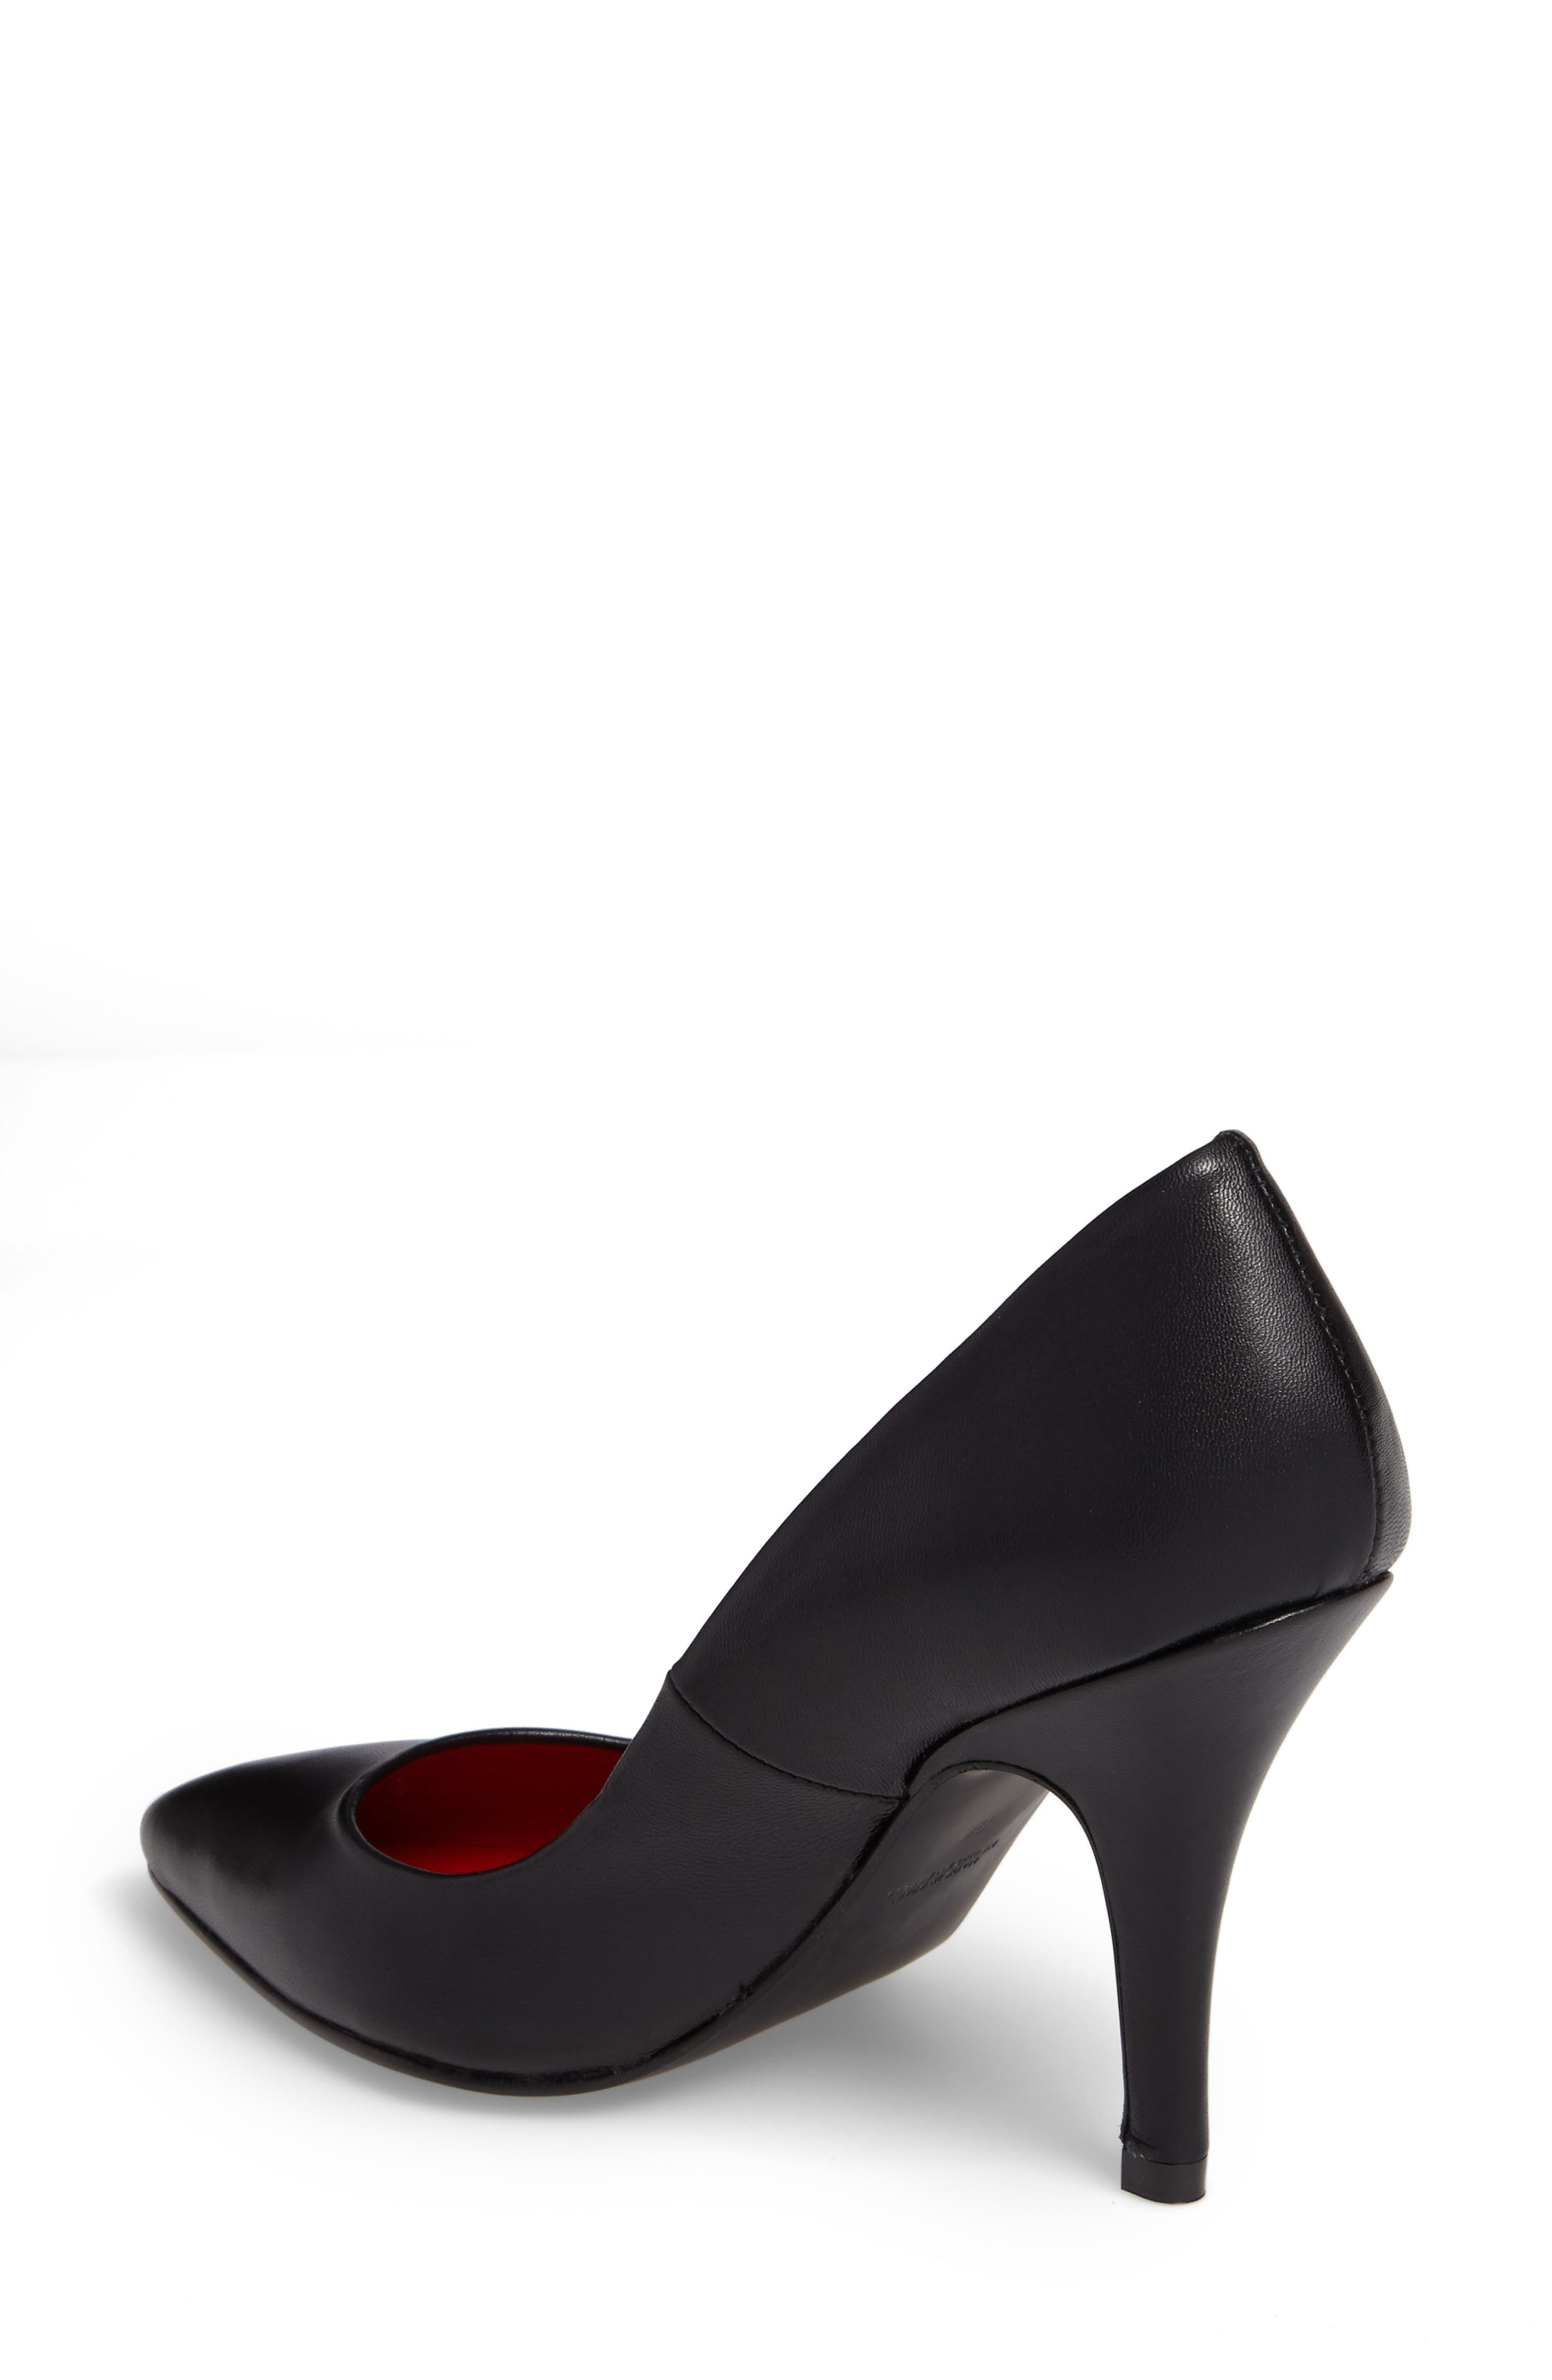 Sachi Pointy Toe Pump,                             Alternate thumbnail 2, color,                             001